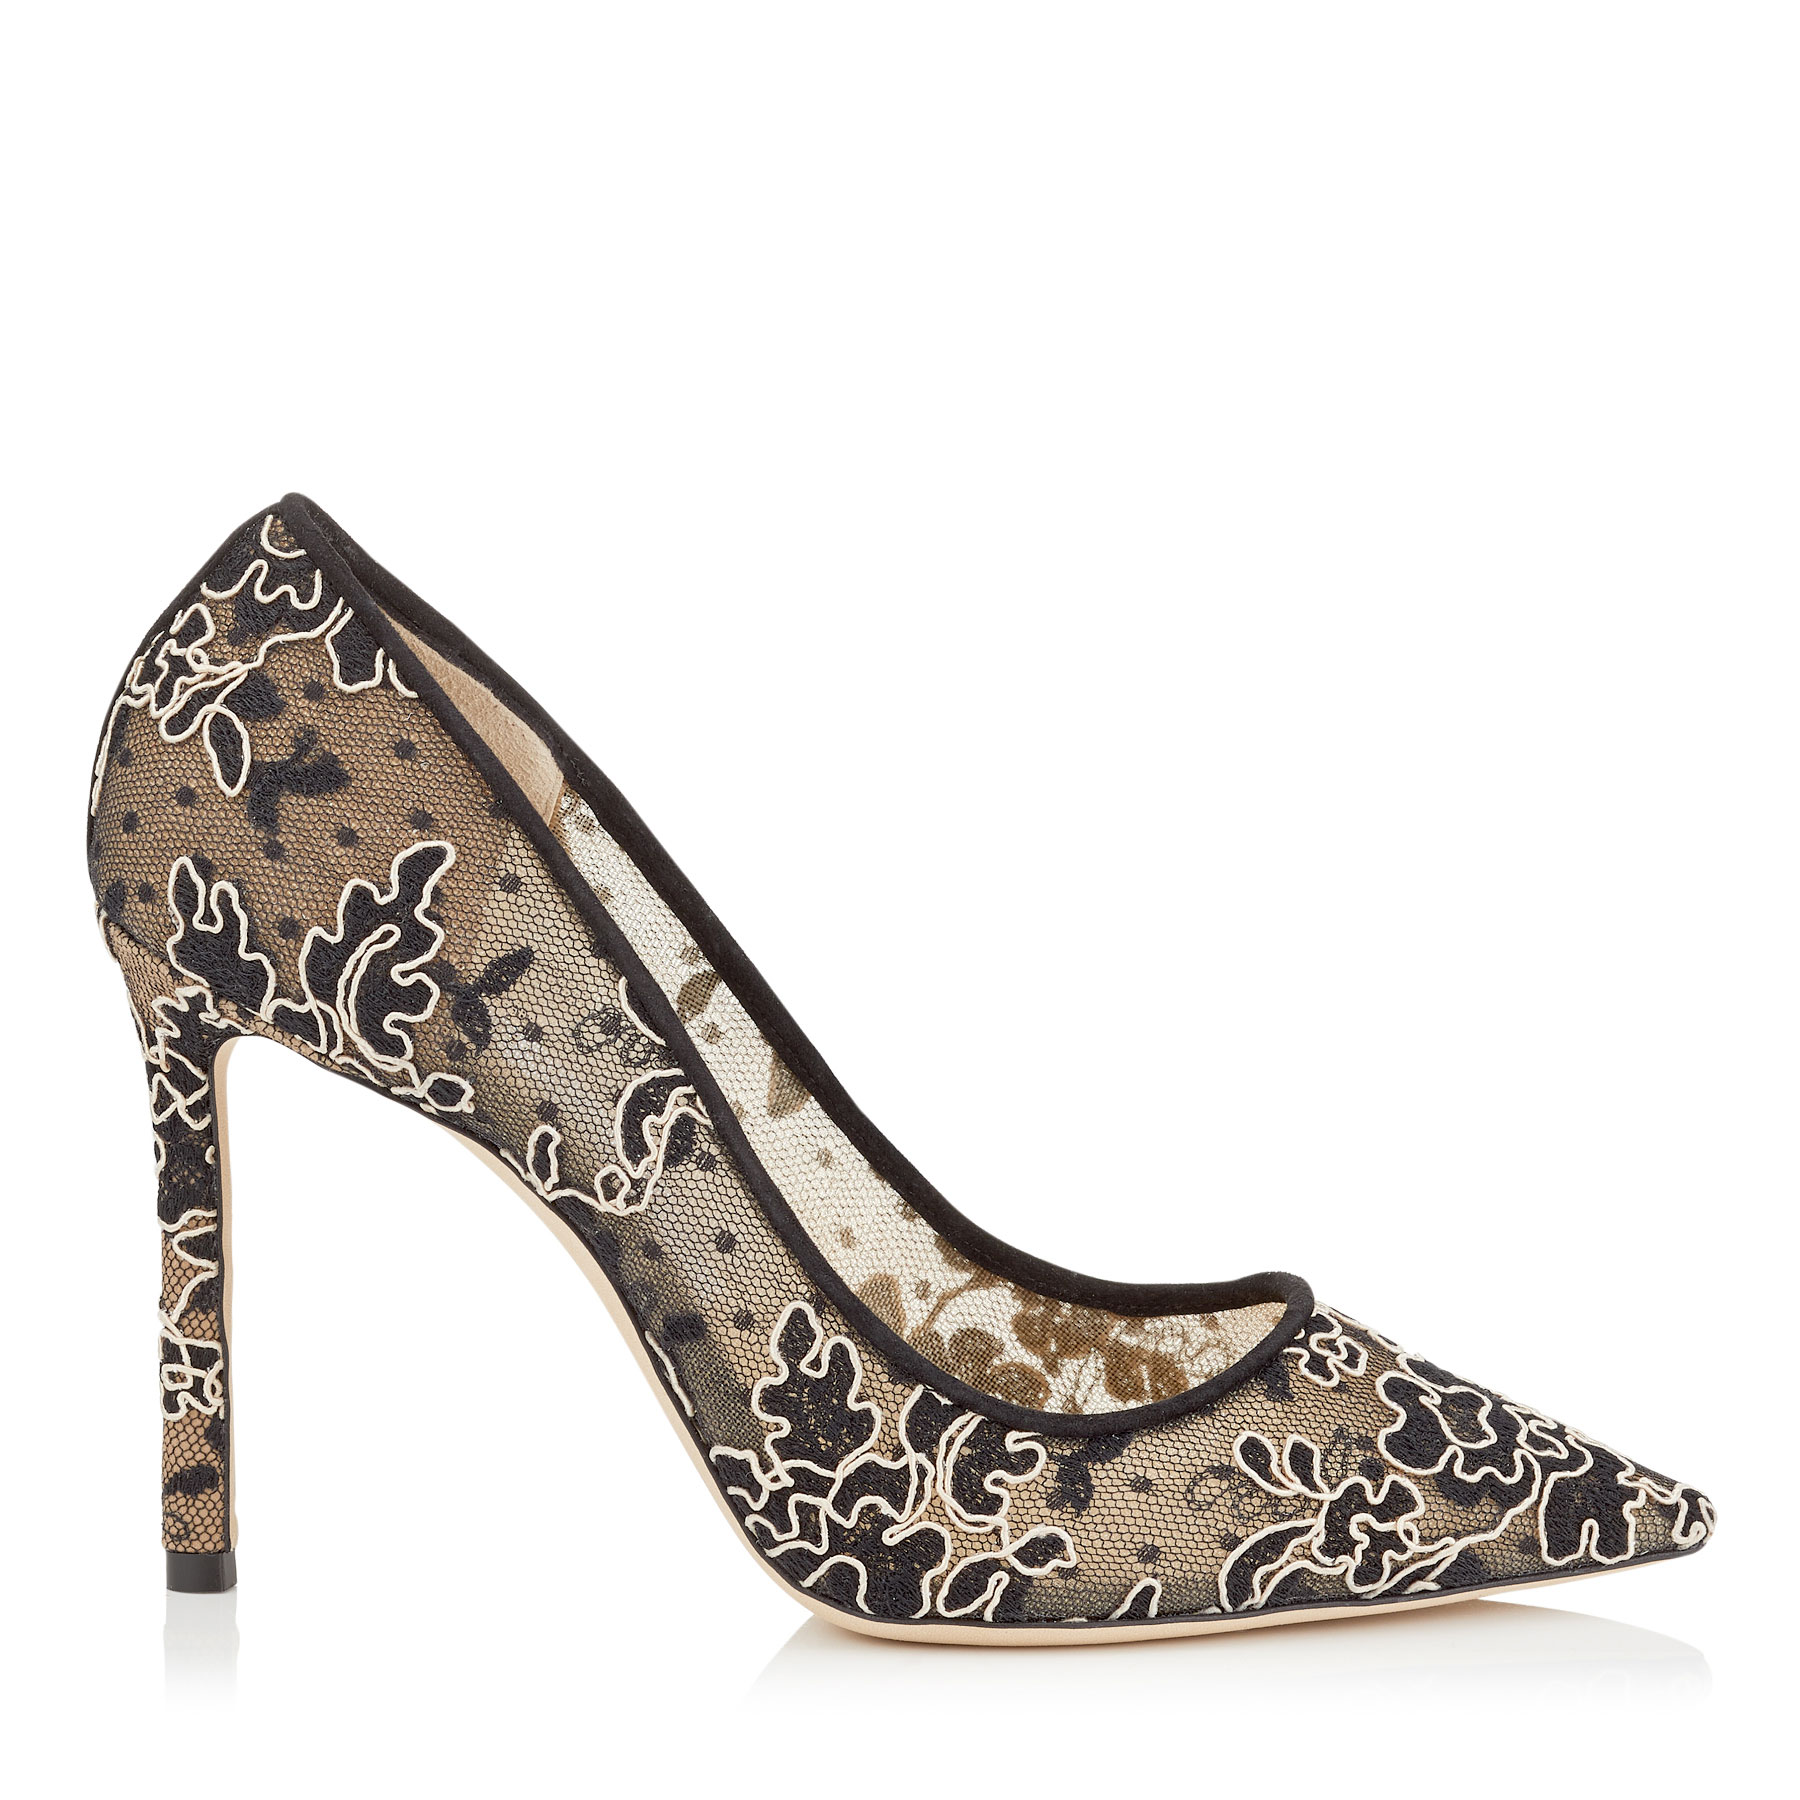 ROMY 100 Black and Nude Floral Corded Lace Pointy Toe Pumps by Jimmy Choo